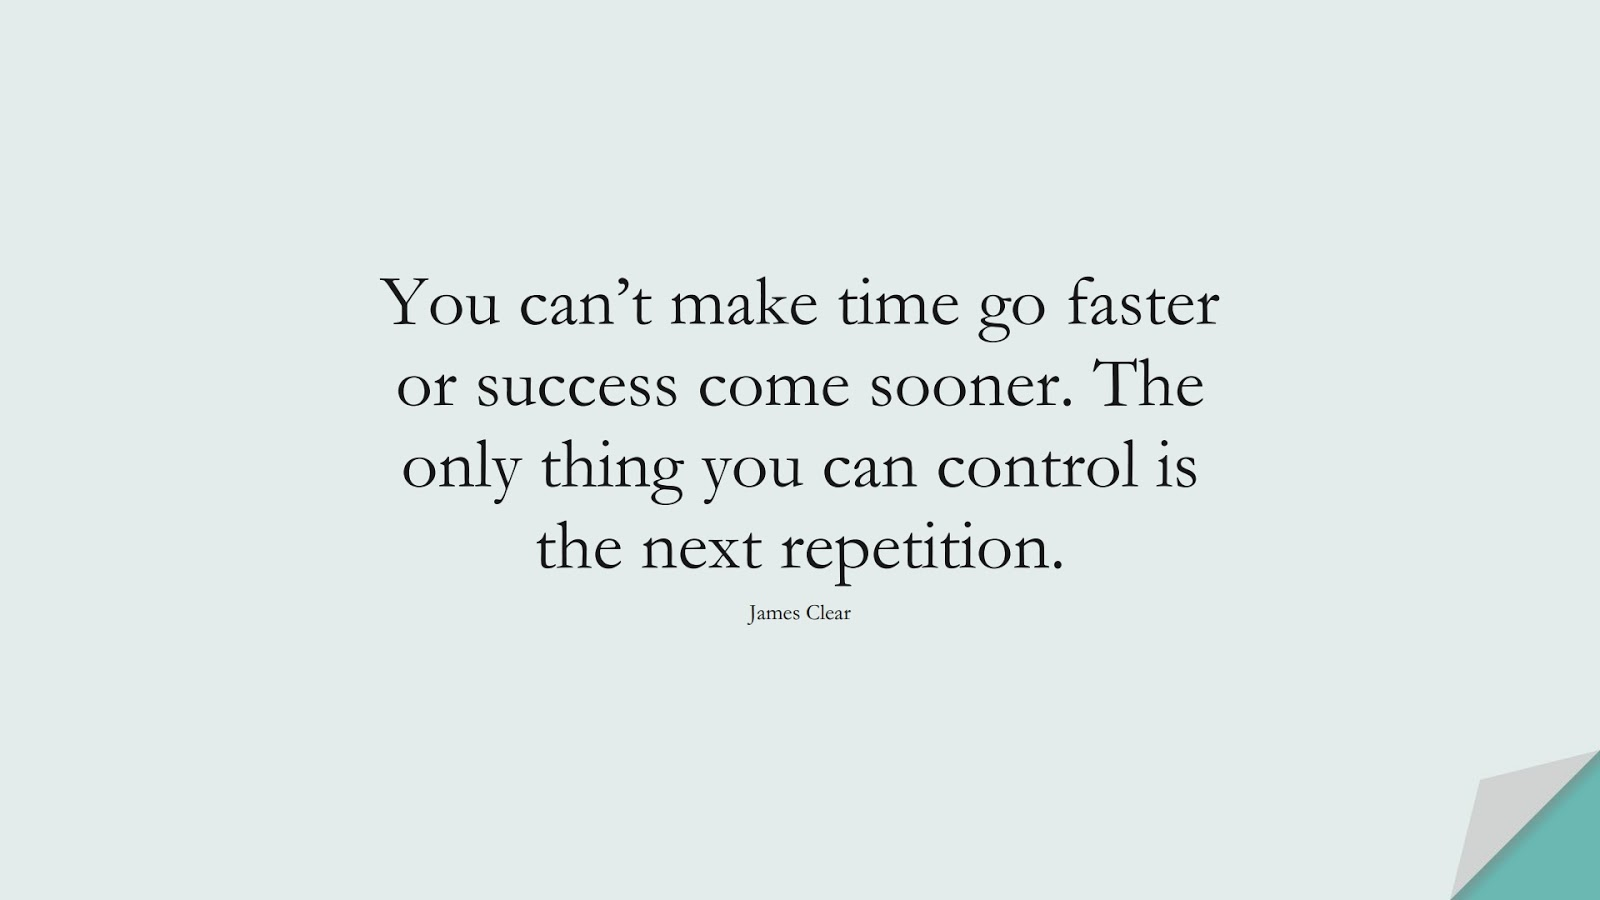 You can't make time go faster or success come sooner. The only thing you can control is the next repetition. (James Clear);  #NeverGiveUpQuotes